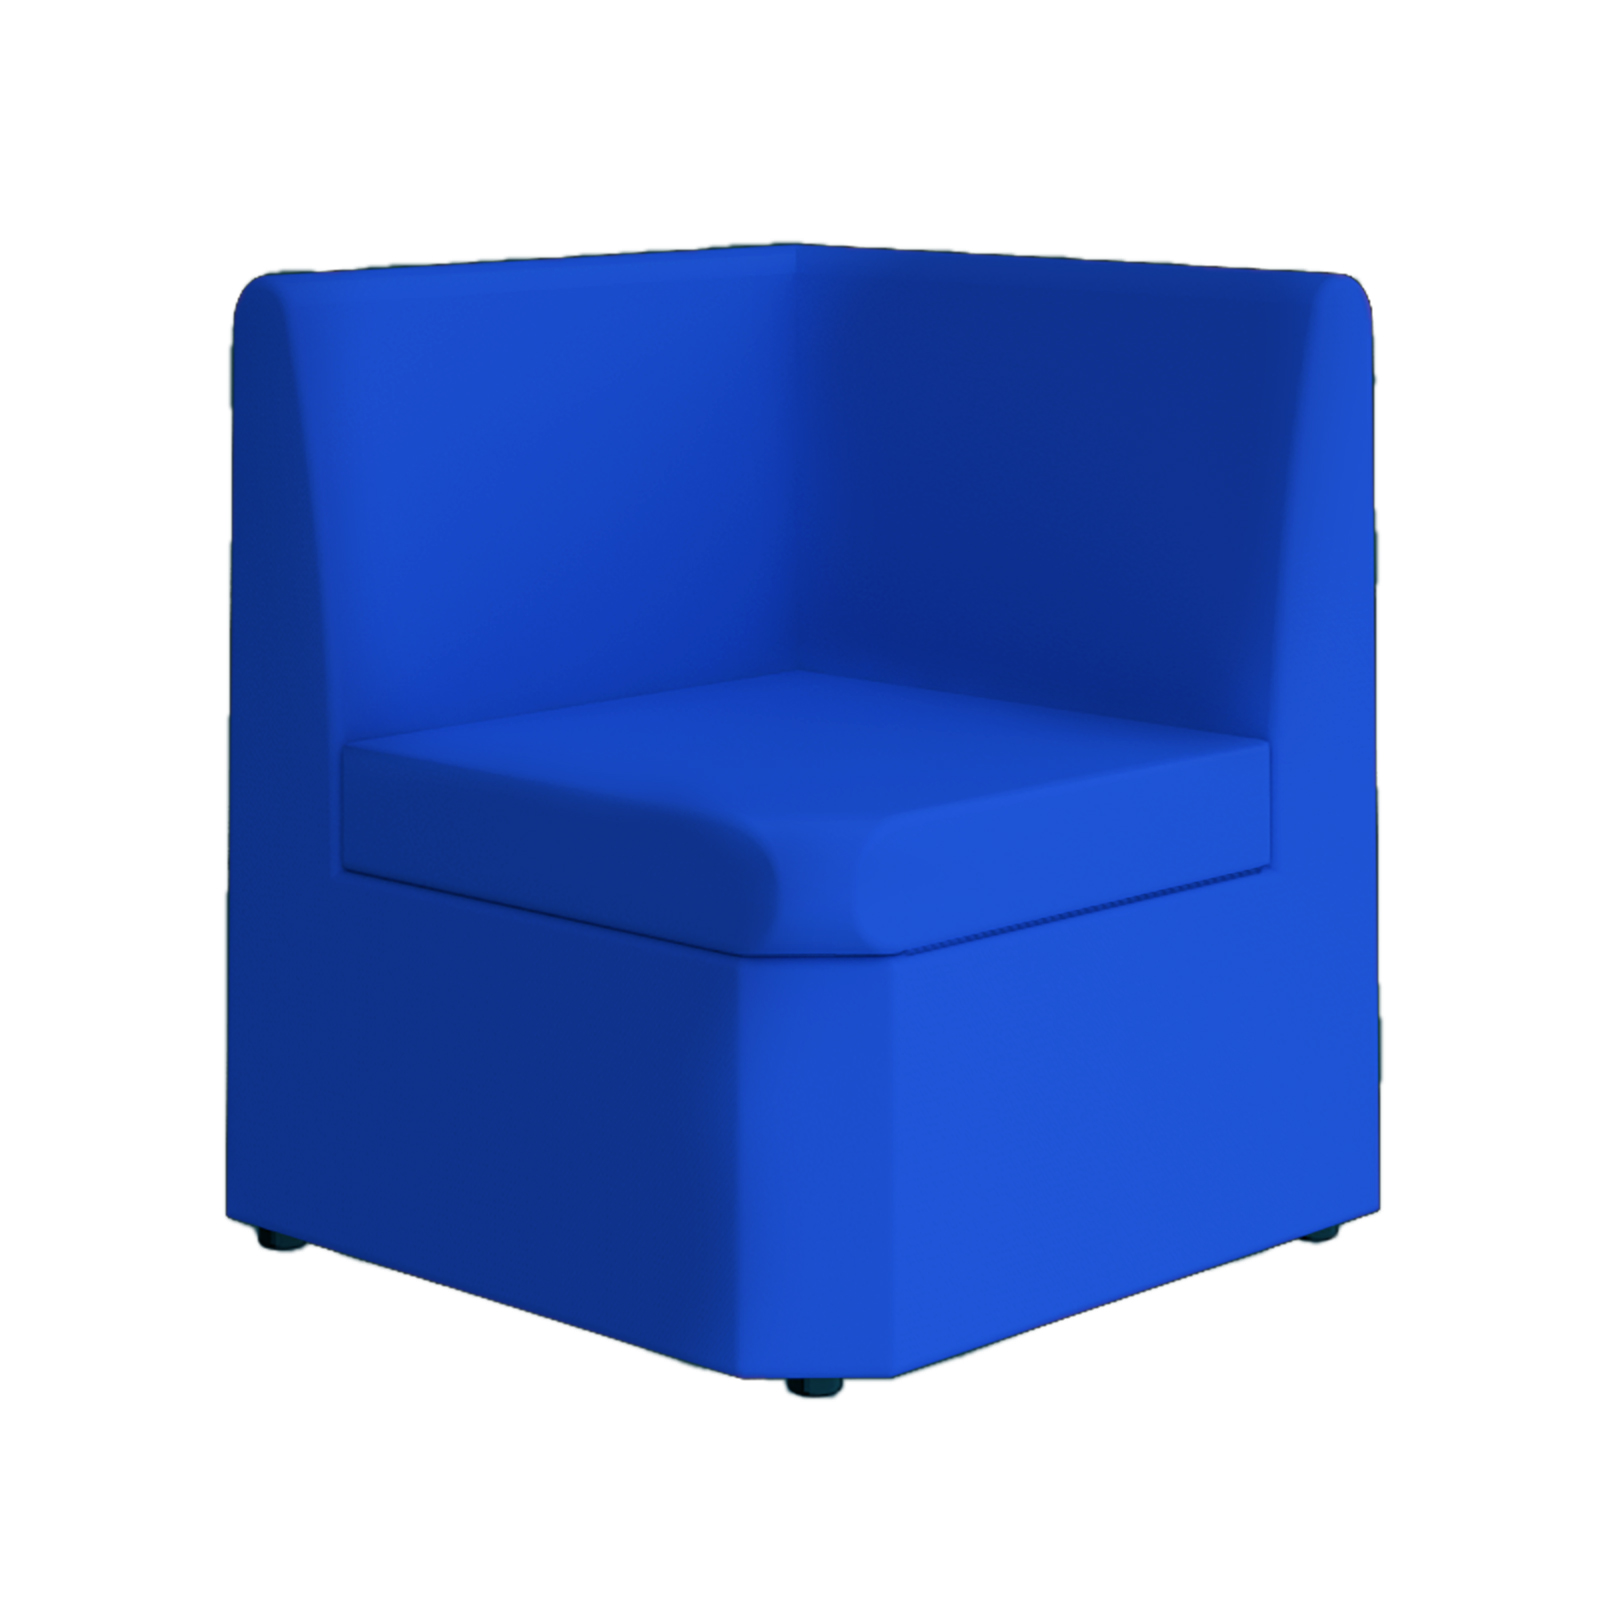 Reception Chairs Alto modular reception seating corner unit - blue